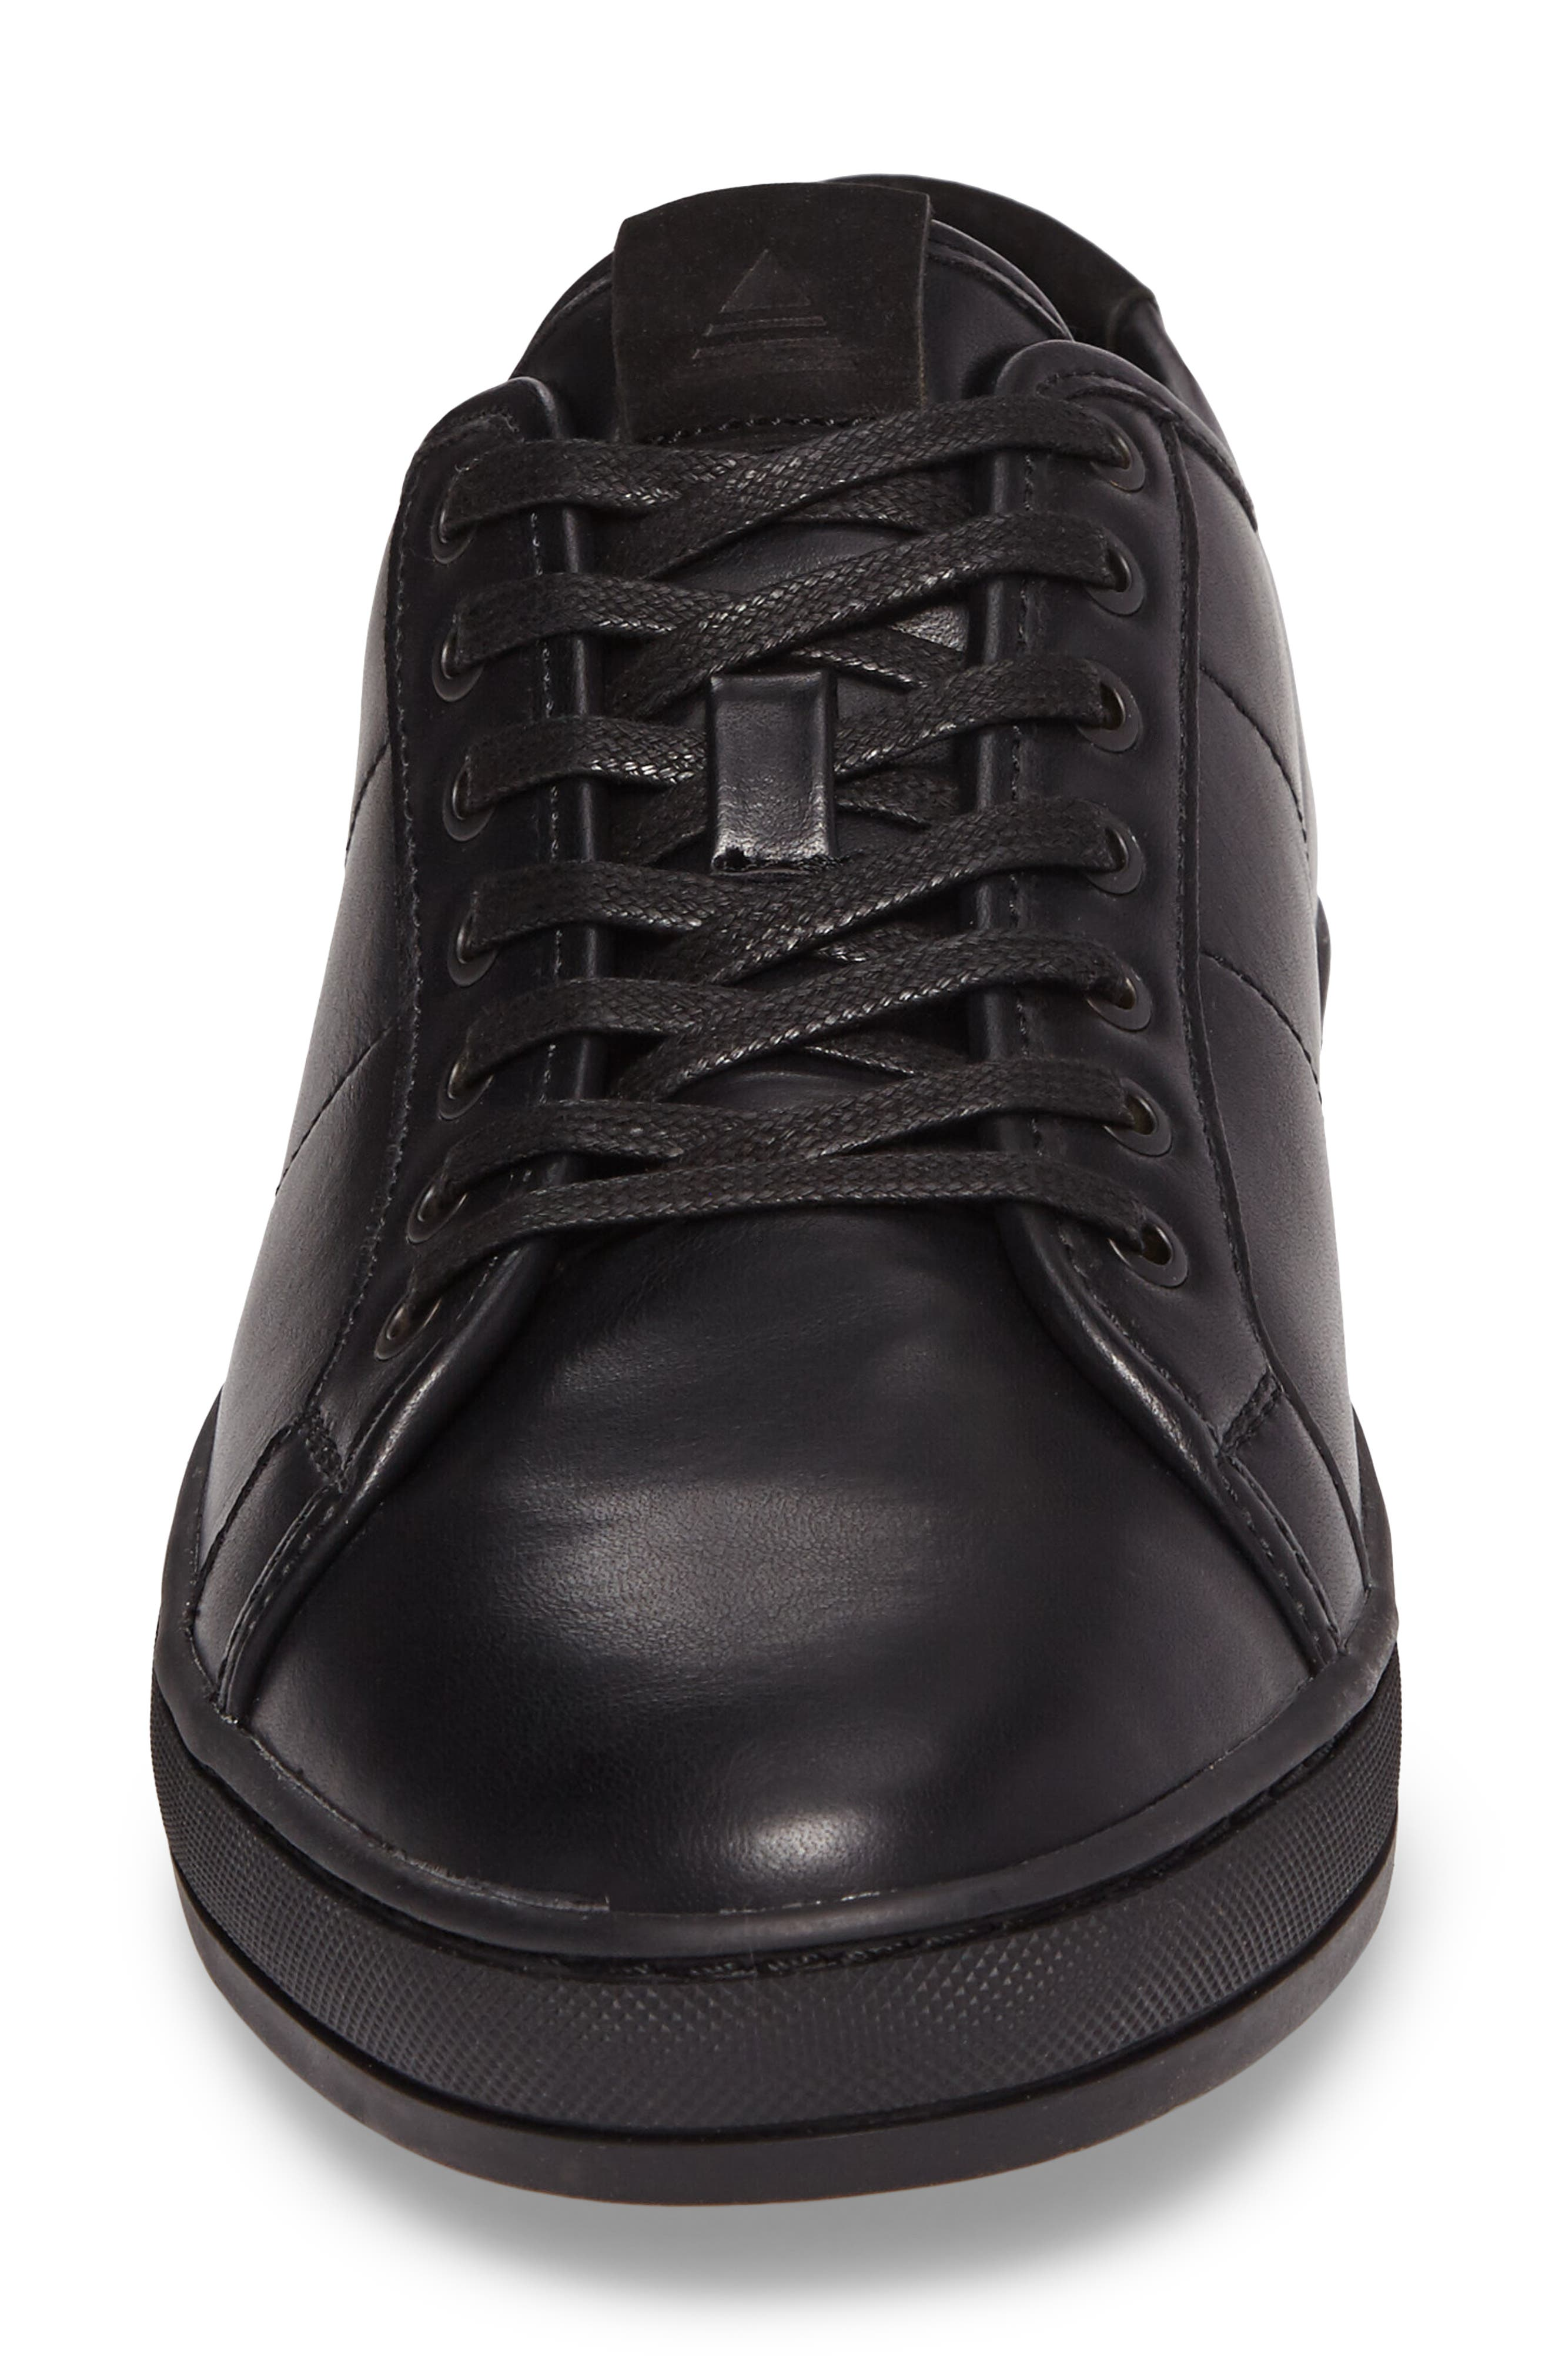 Delello Low-Top Sneaker,                             Alternate thumbnail 4, color,                             001